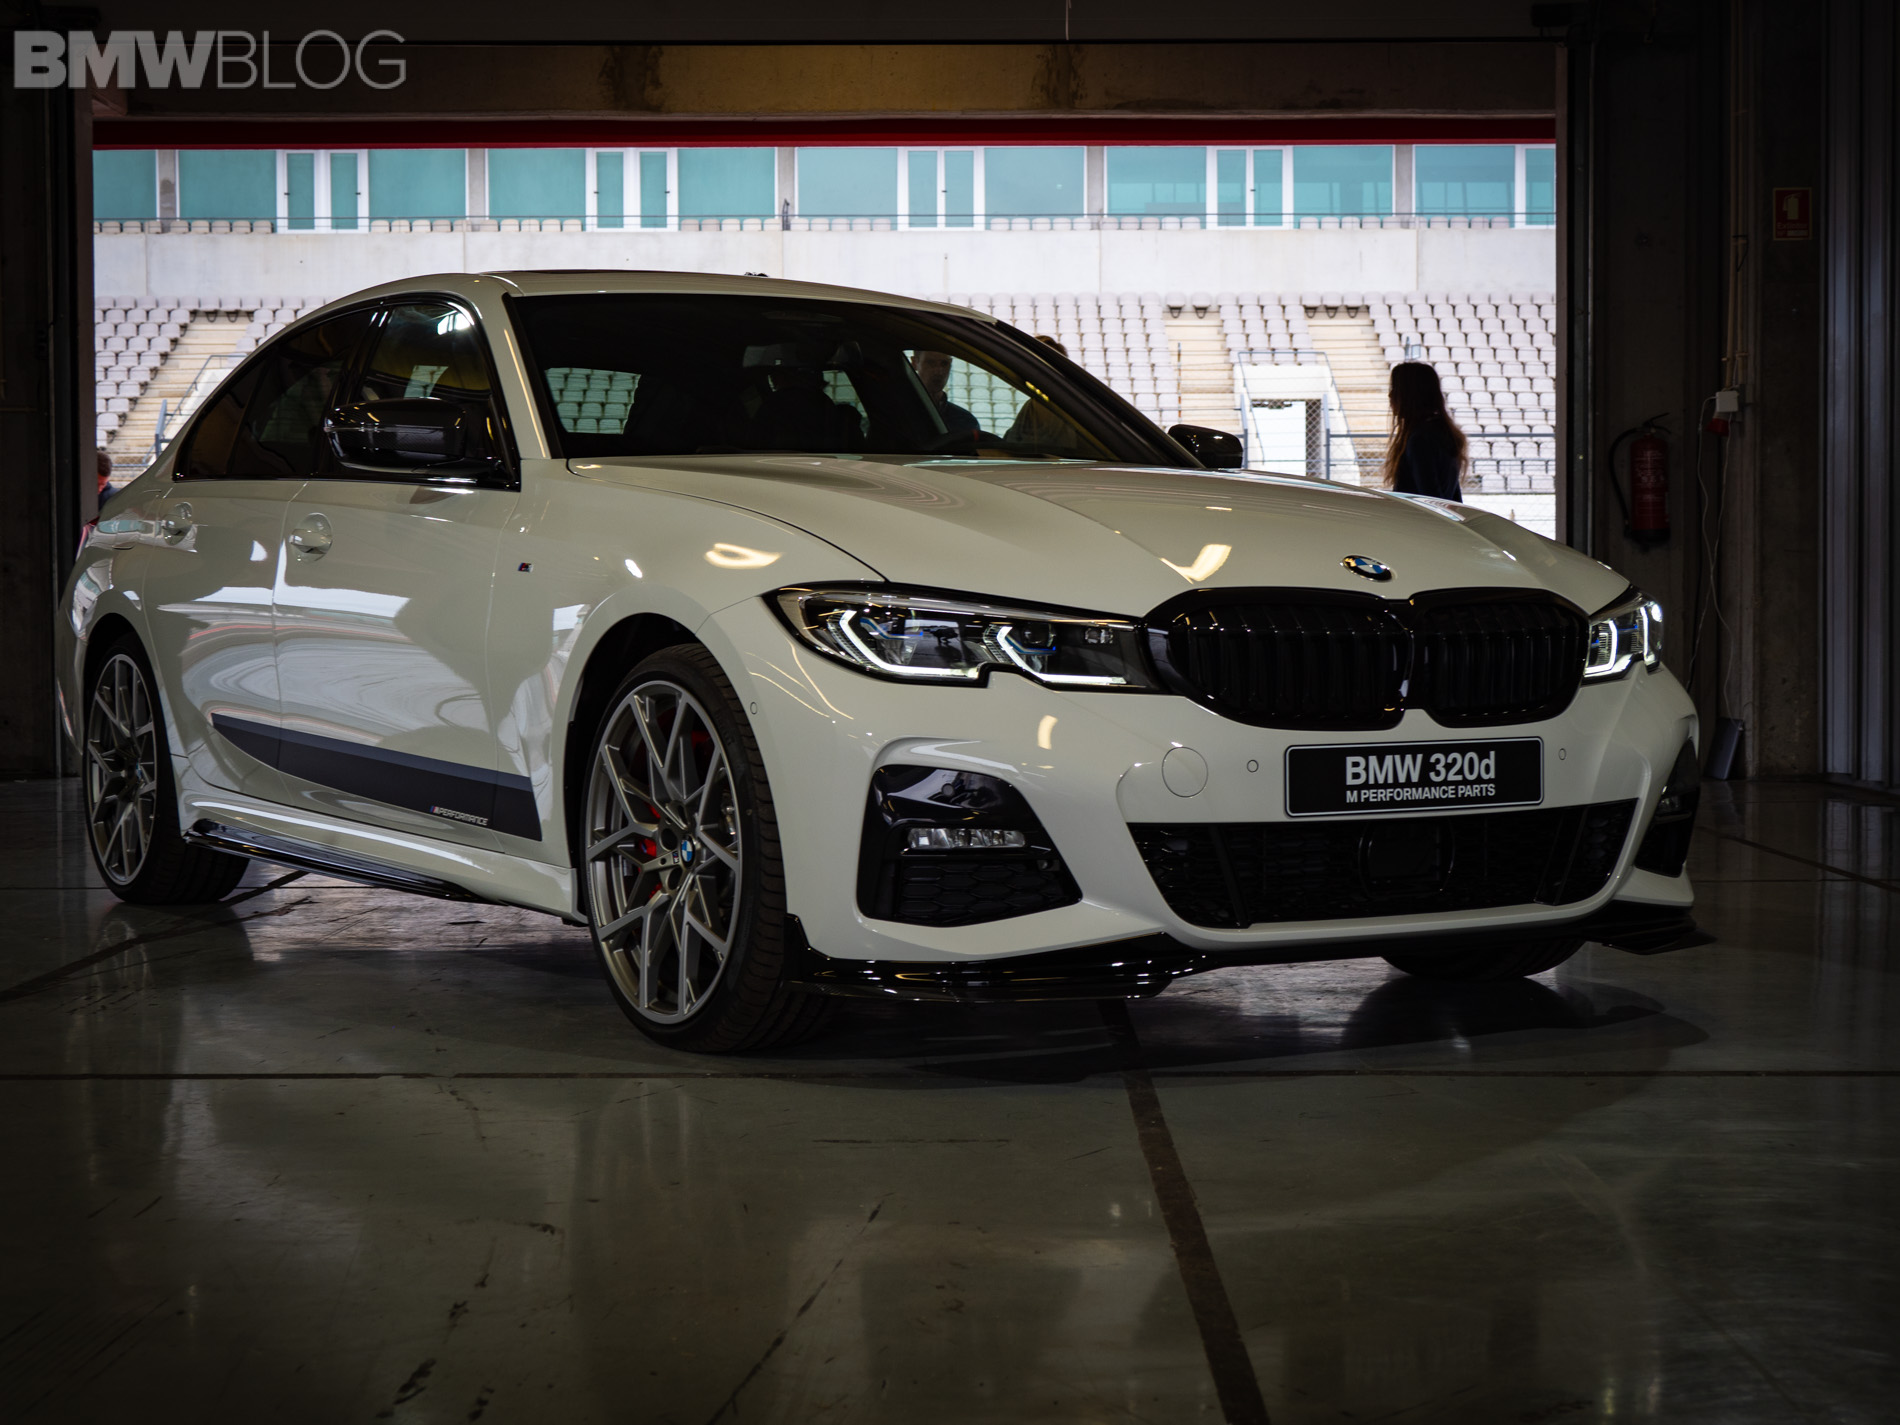 First Look At The New Bmw 3 Series With M Performance Parts